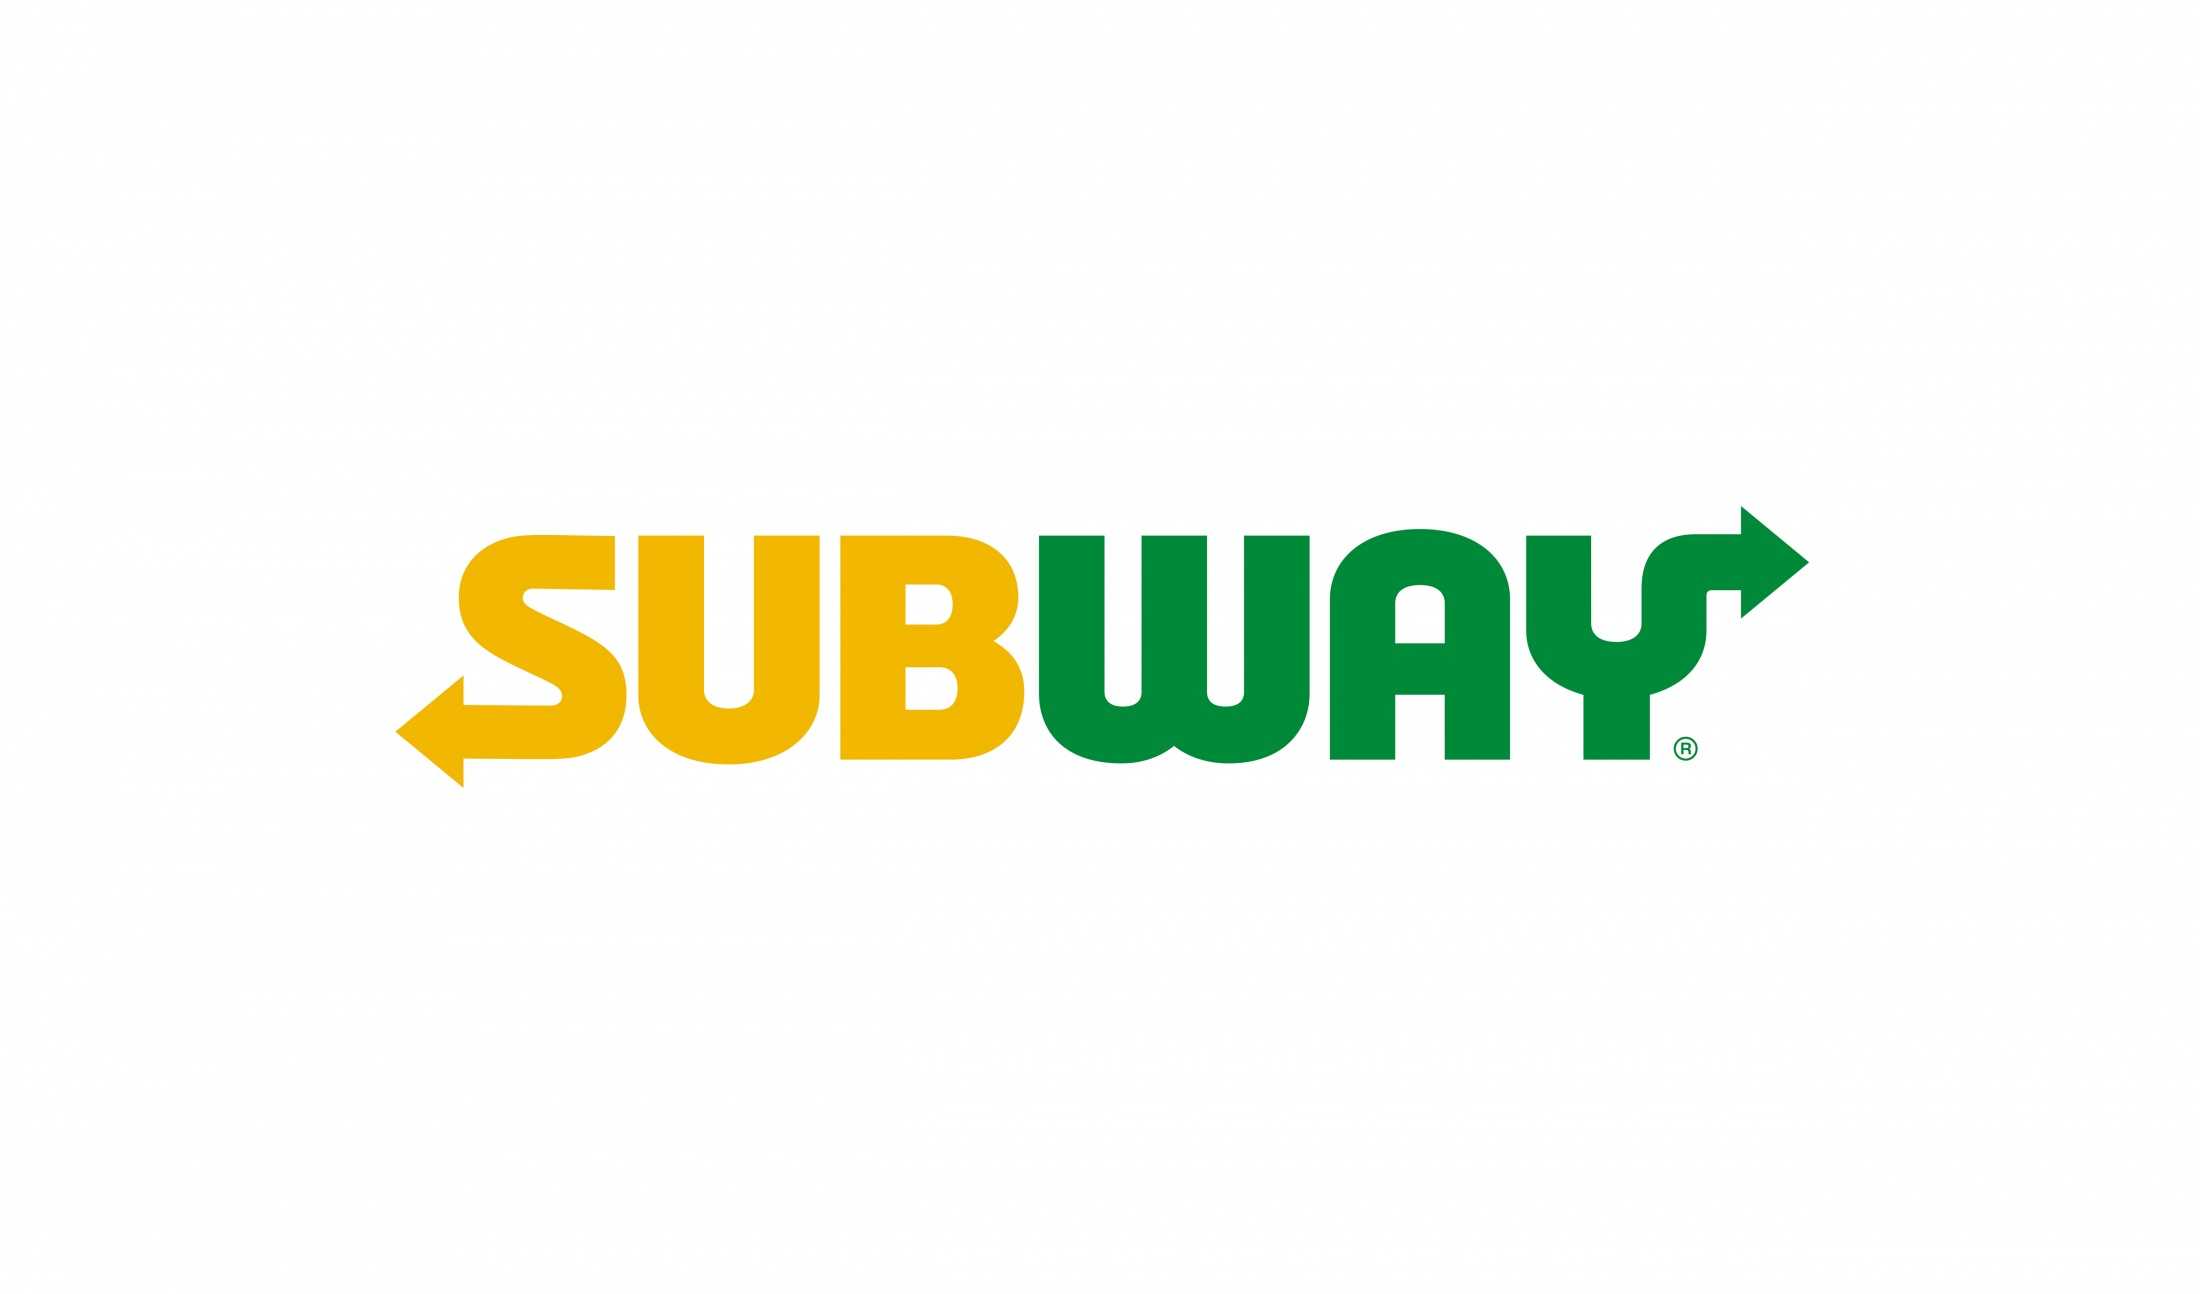 Subway   1 Free Cookie with purchase of any wrap/six-inch or footlong sub